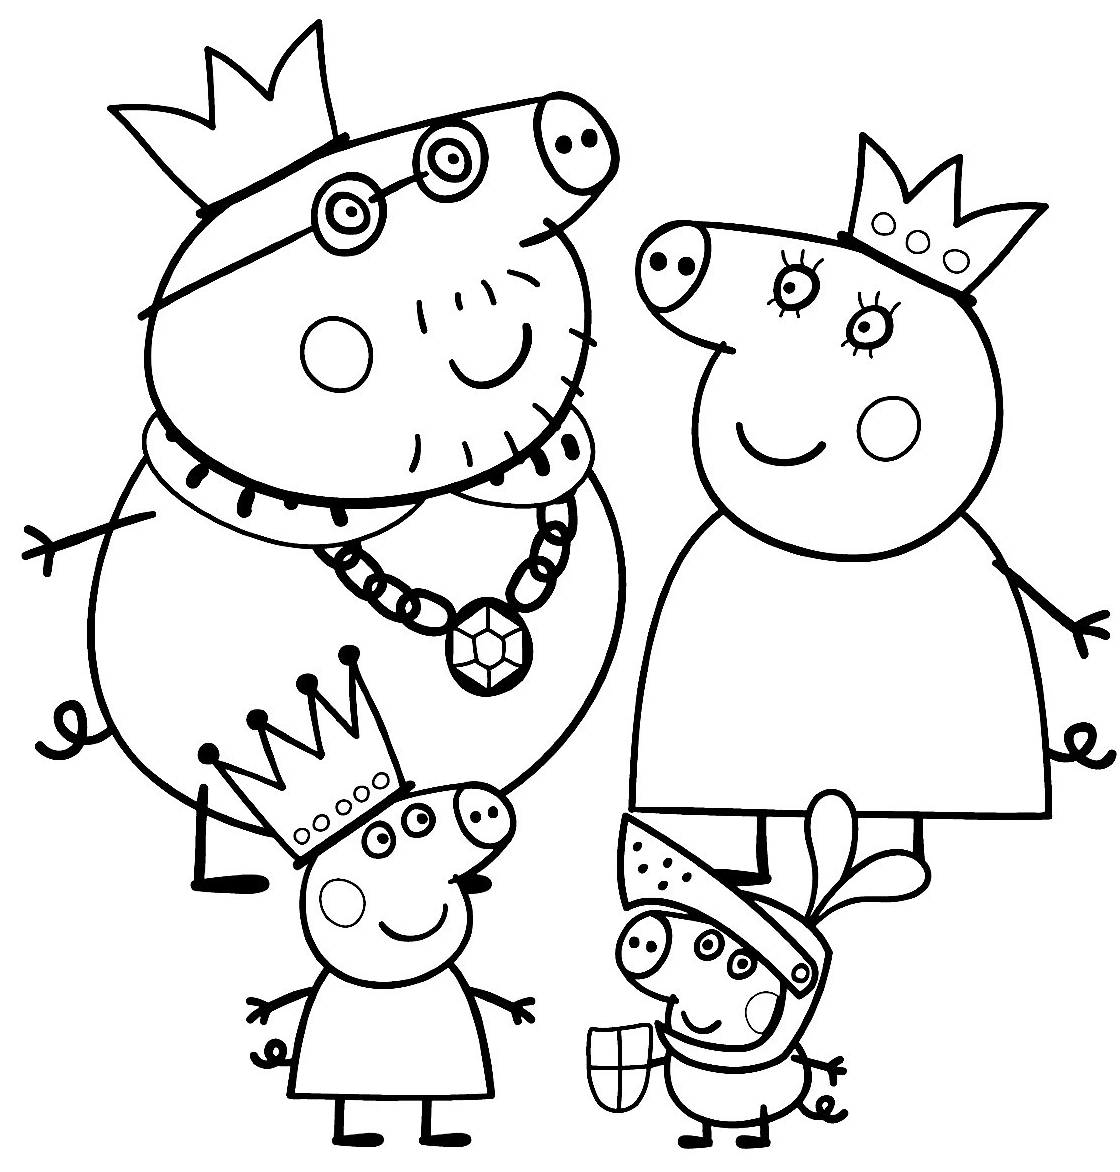 Coloring pages peppa pig - 13 Pics Of Peppa Pig Family Coloring Pages Peppa Pig Coloring